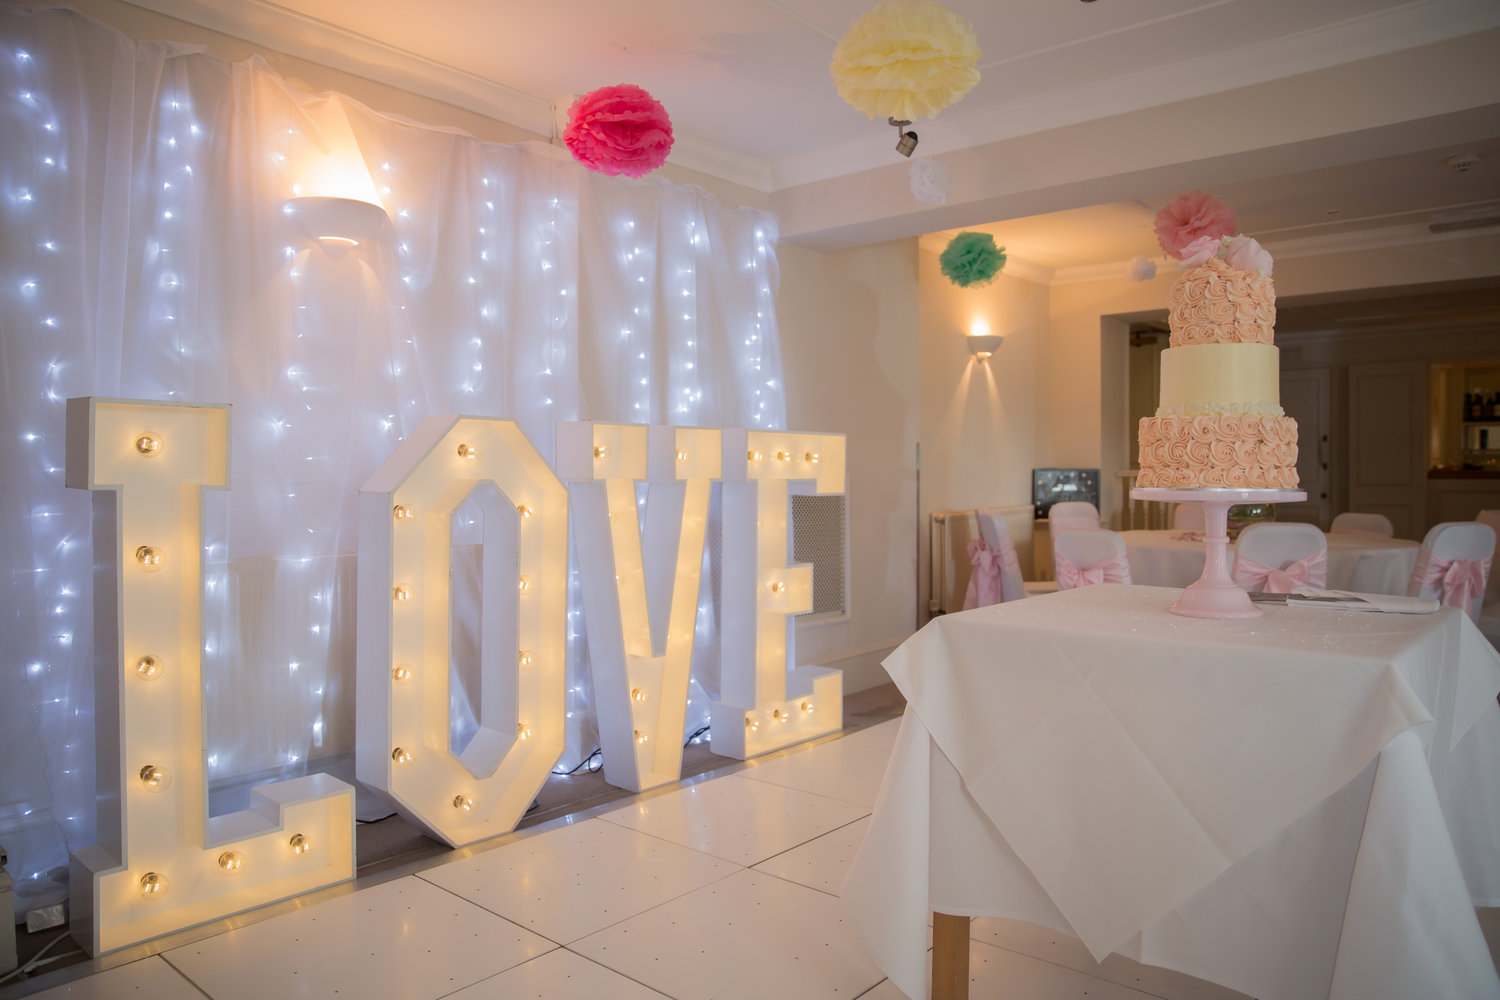 Giant Love Letters - High quality wooden letters with sparkling LED bulbs give a beautiful glow day and night. The perfect addition to your wedding reception!